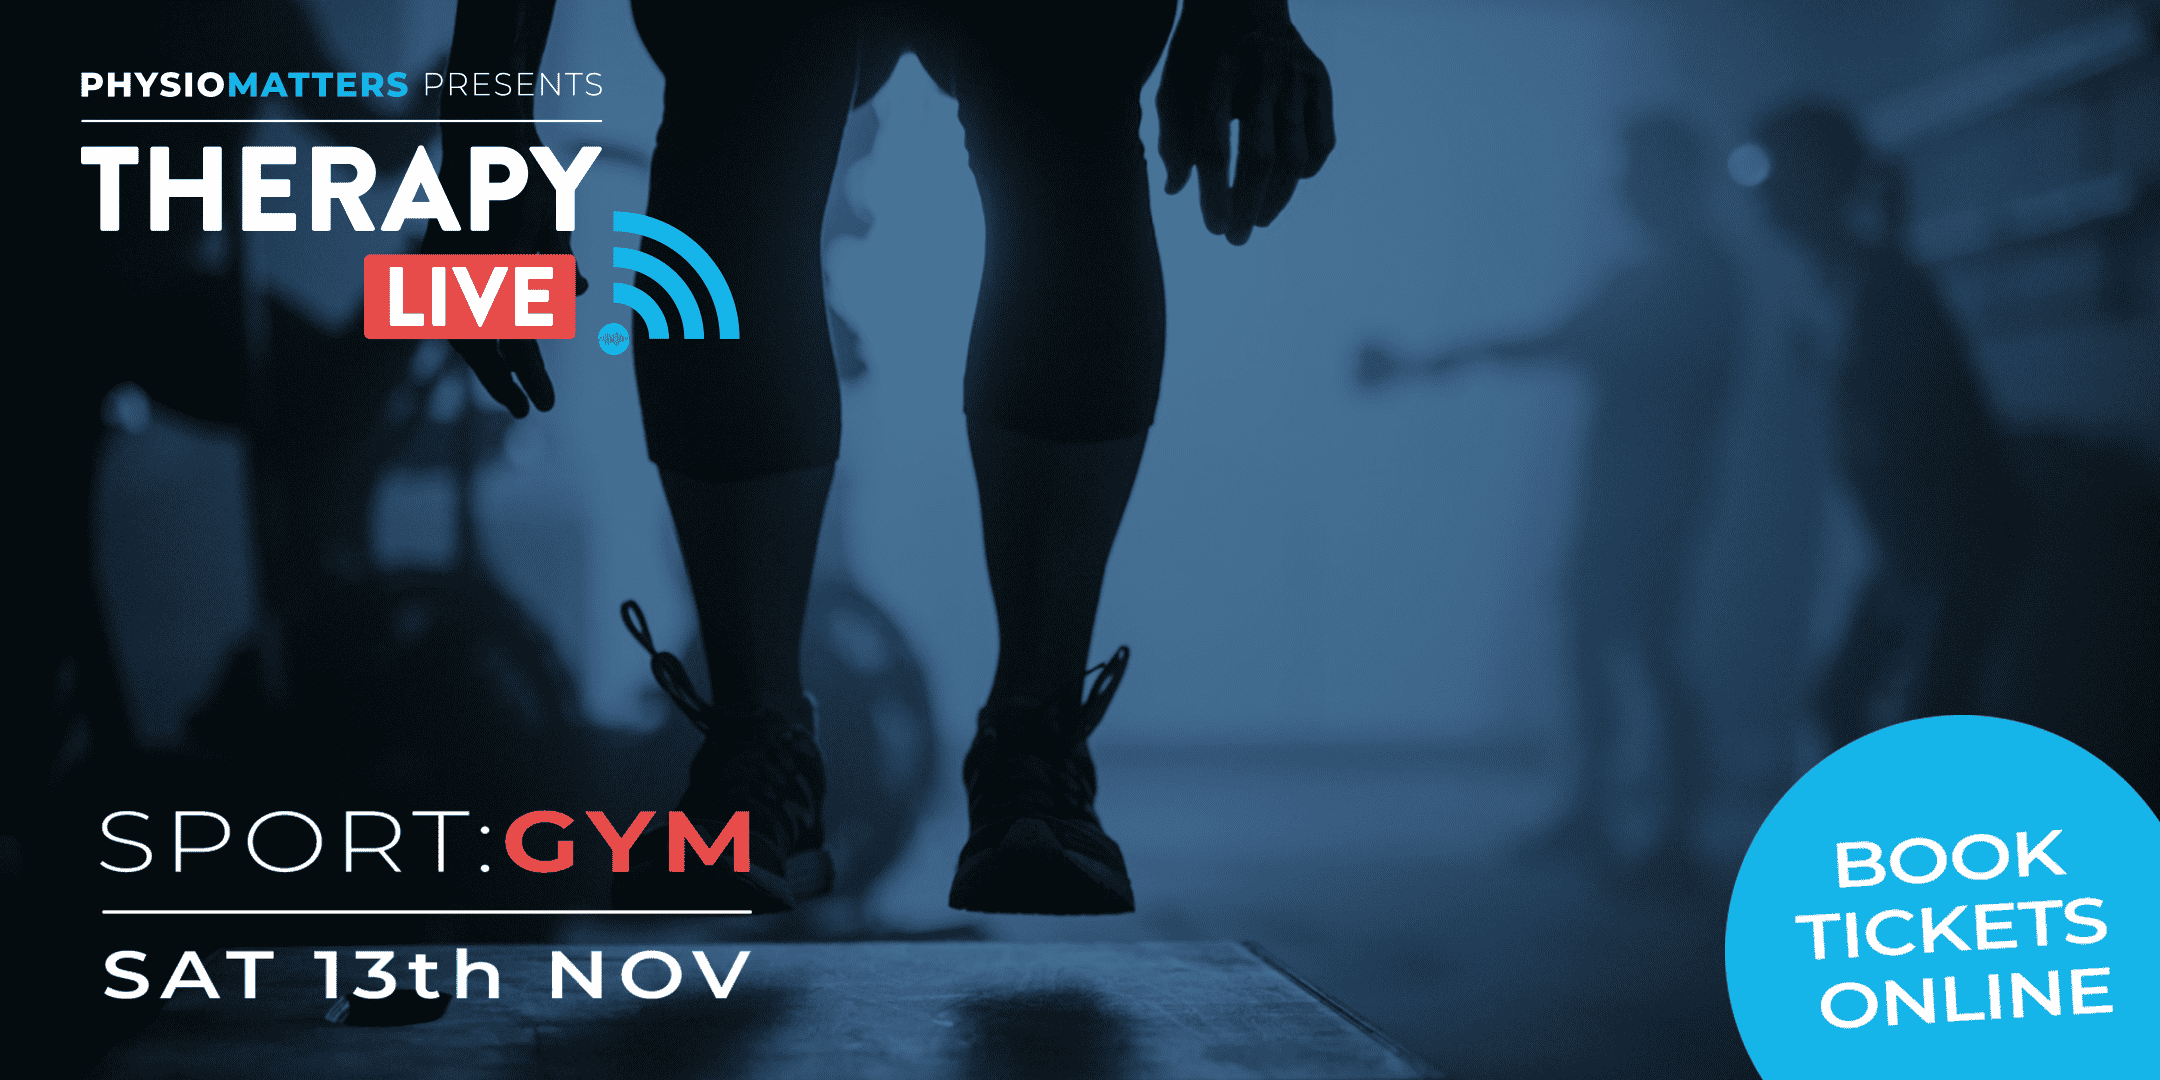 therapy live sport: gym 2021